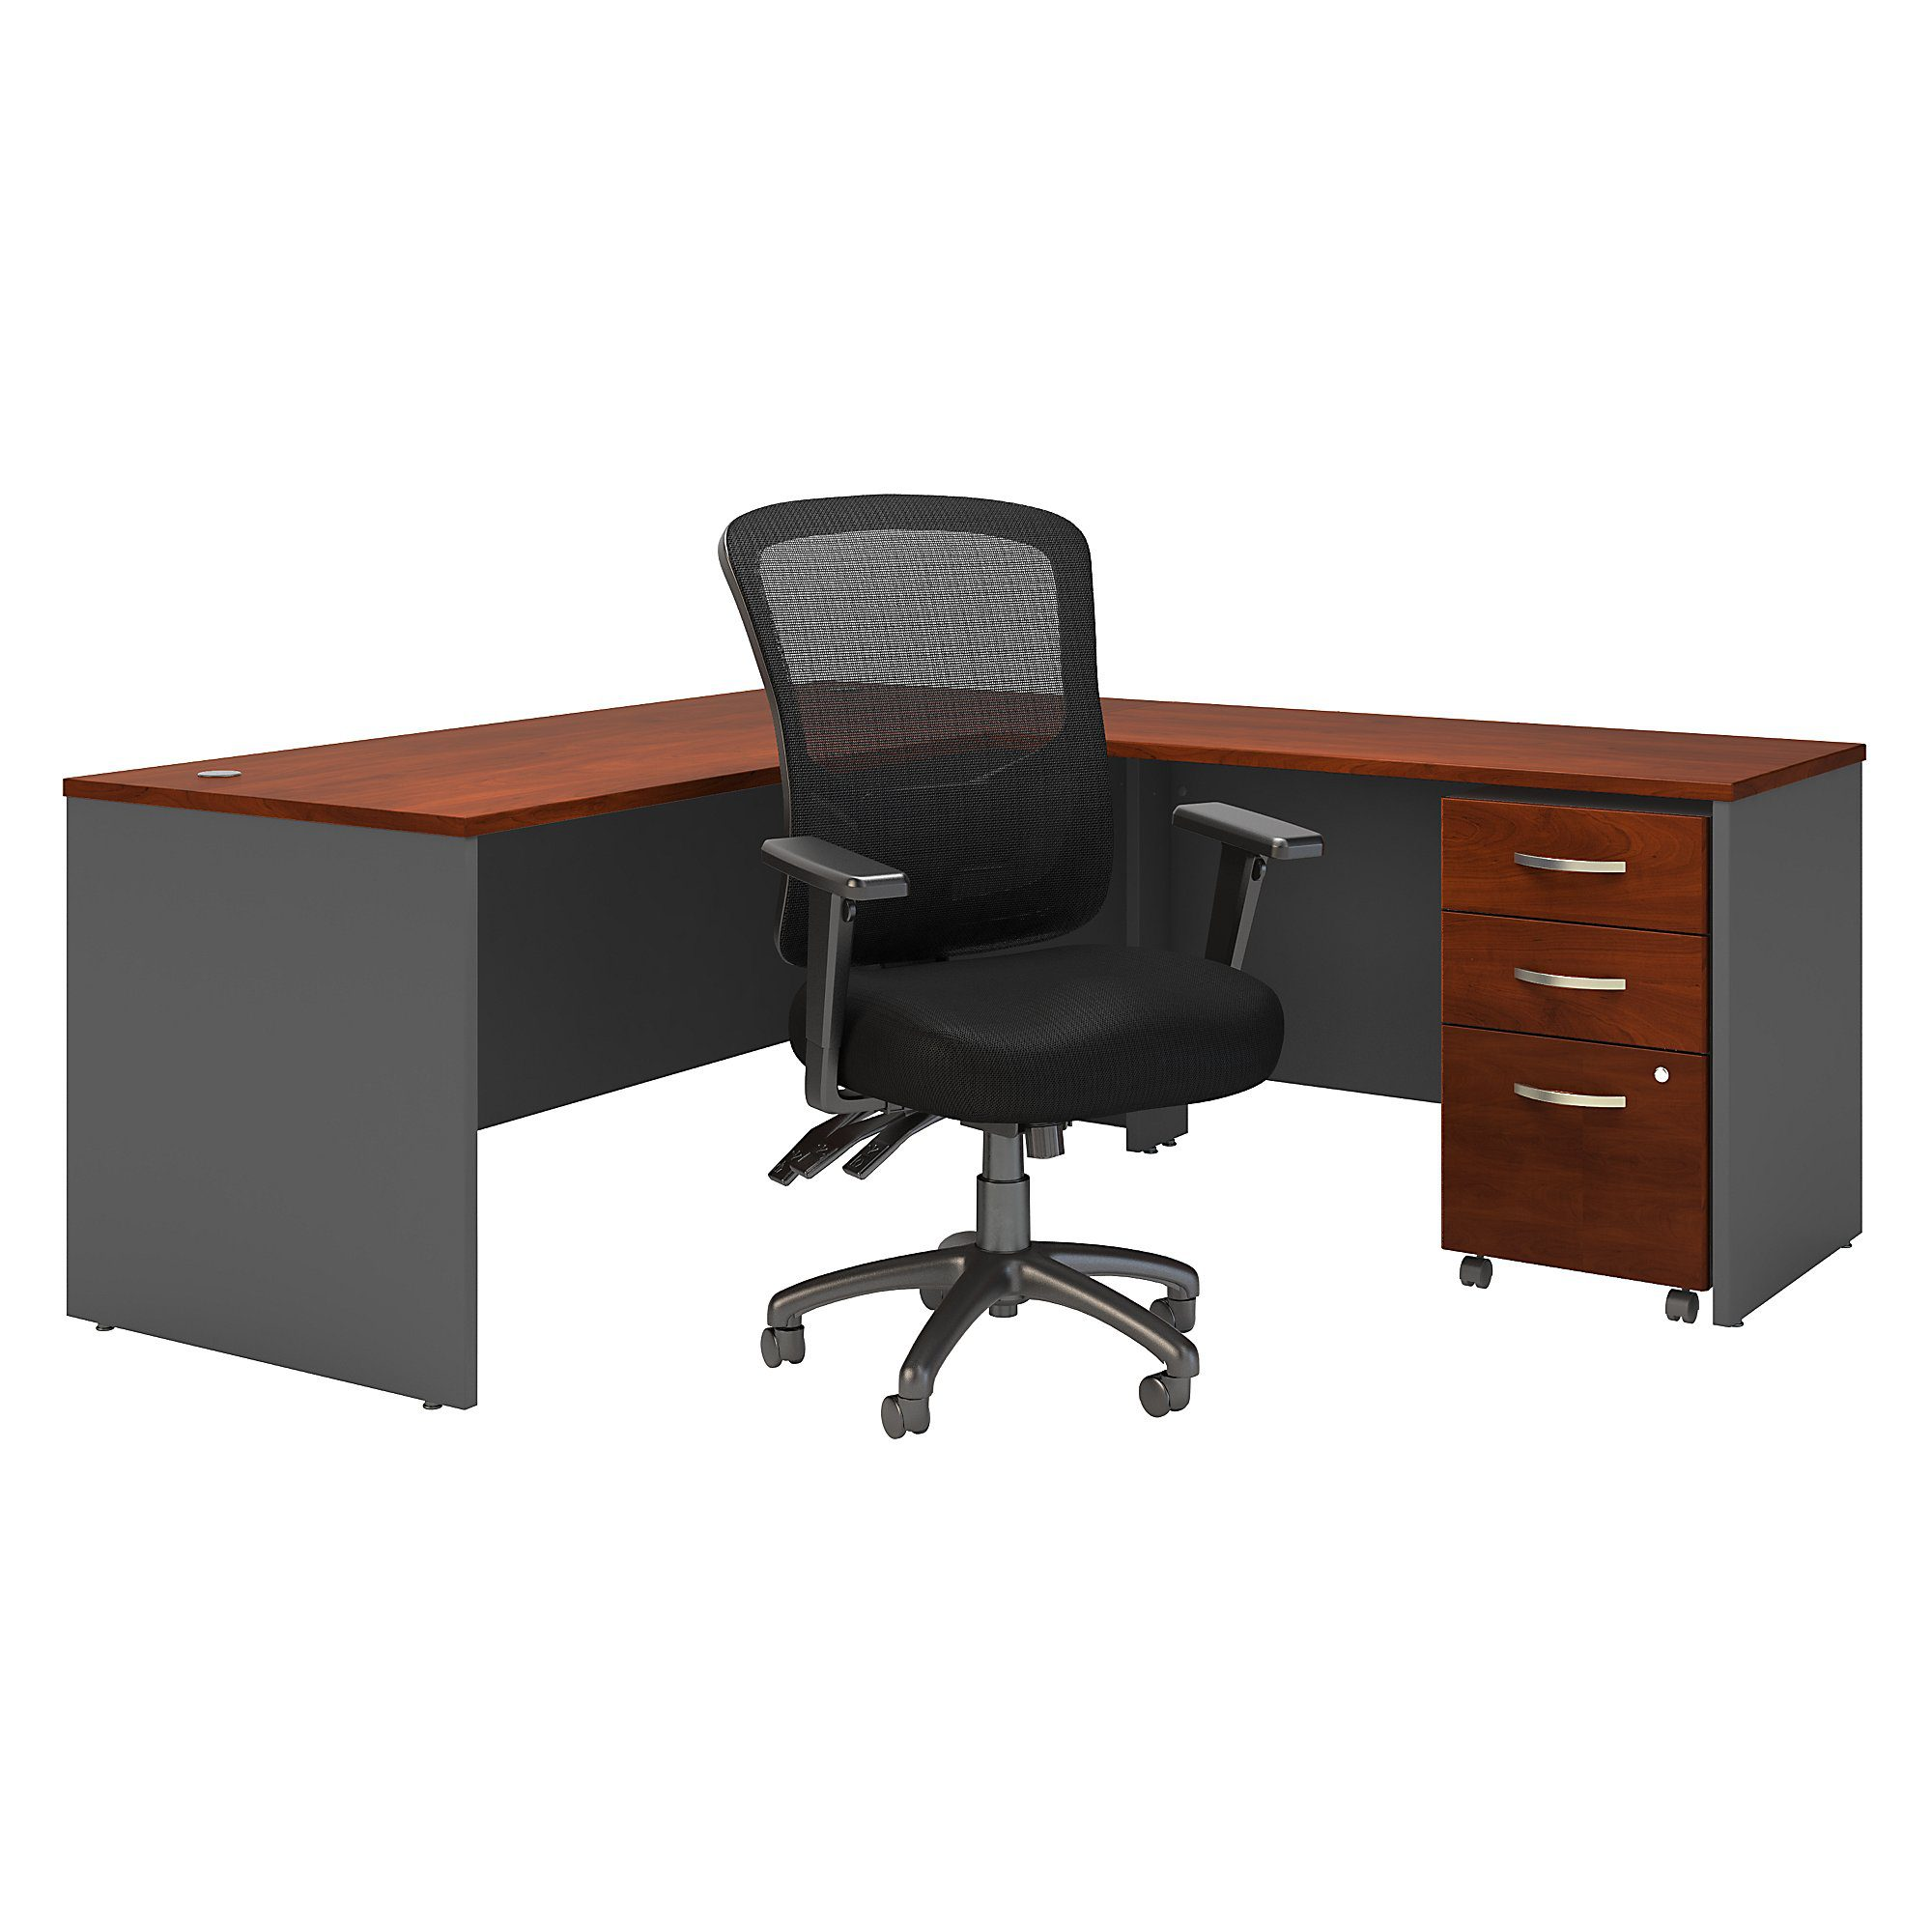 Bush Business Furniture Series C 72w L Shaped Desk With Mobile File Cabinet And High Back Multifunction Office Chair Carrolls Office Furniture